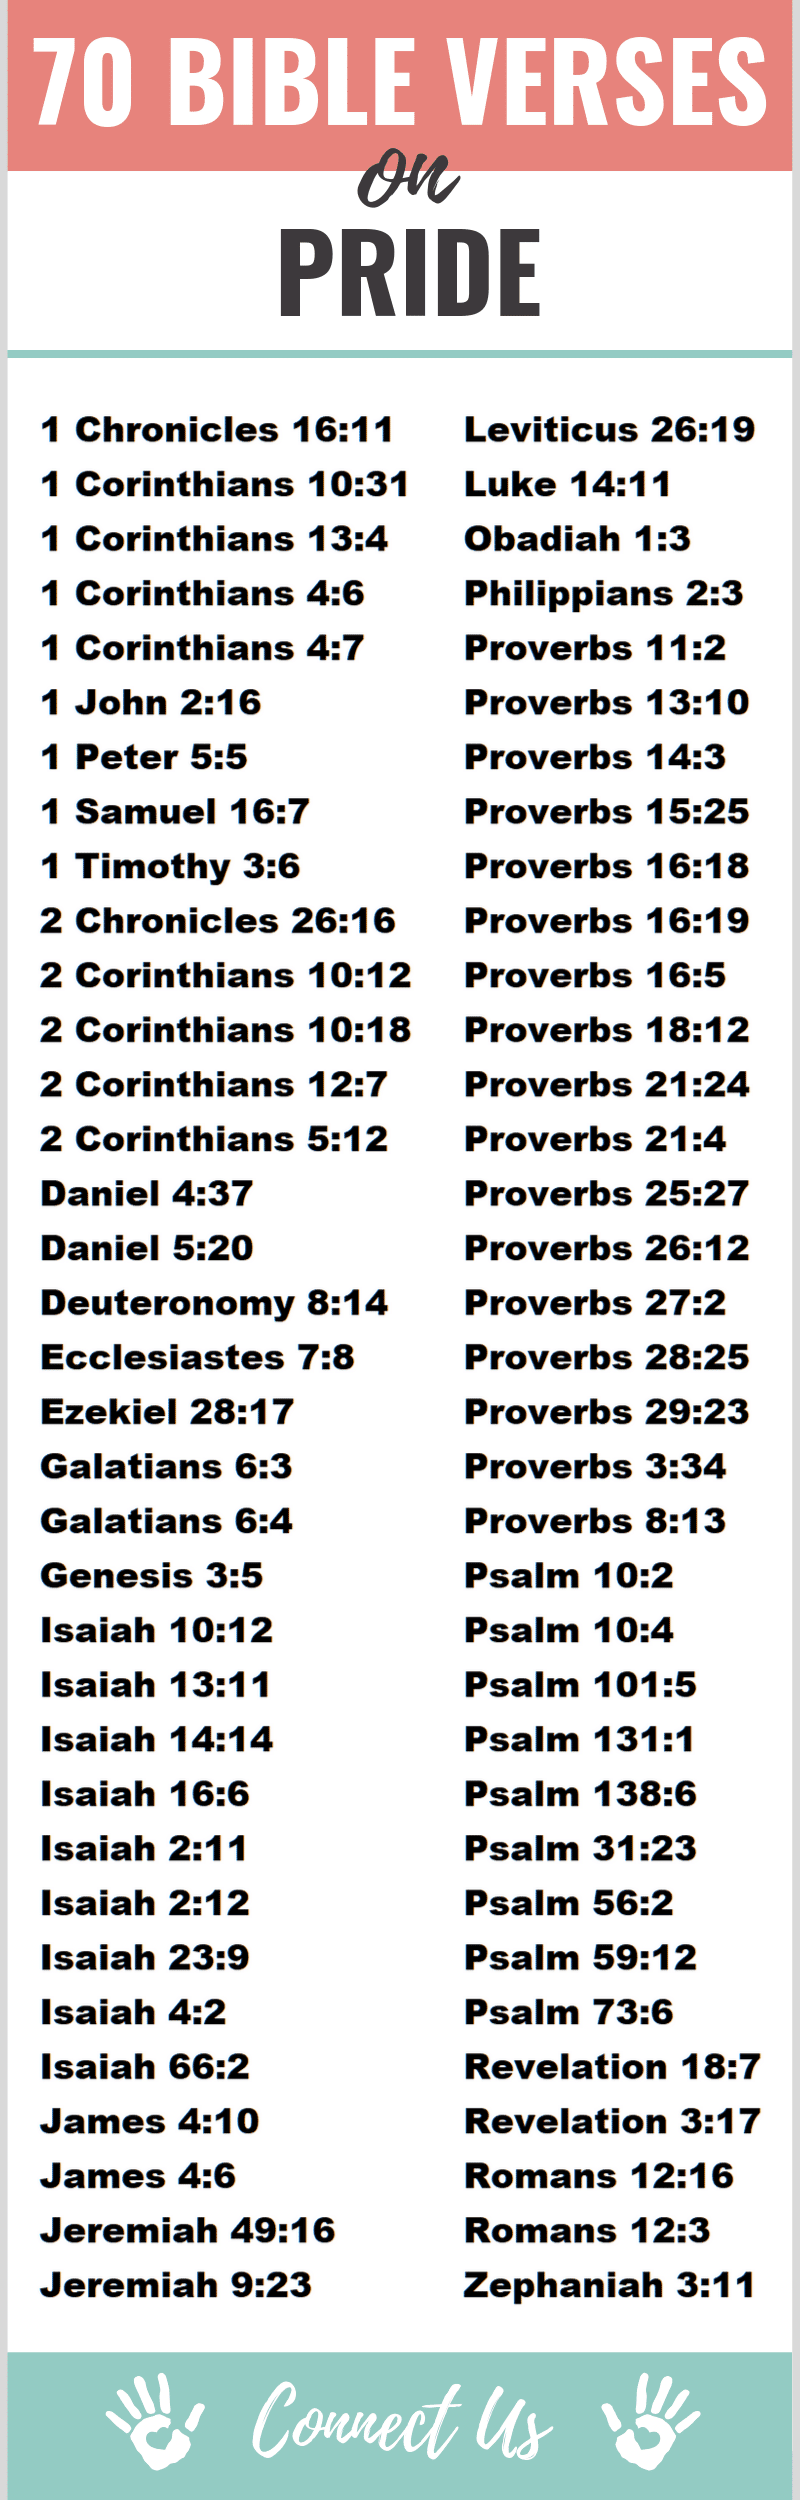 Bible Verses on Pride